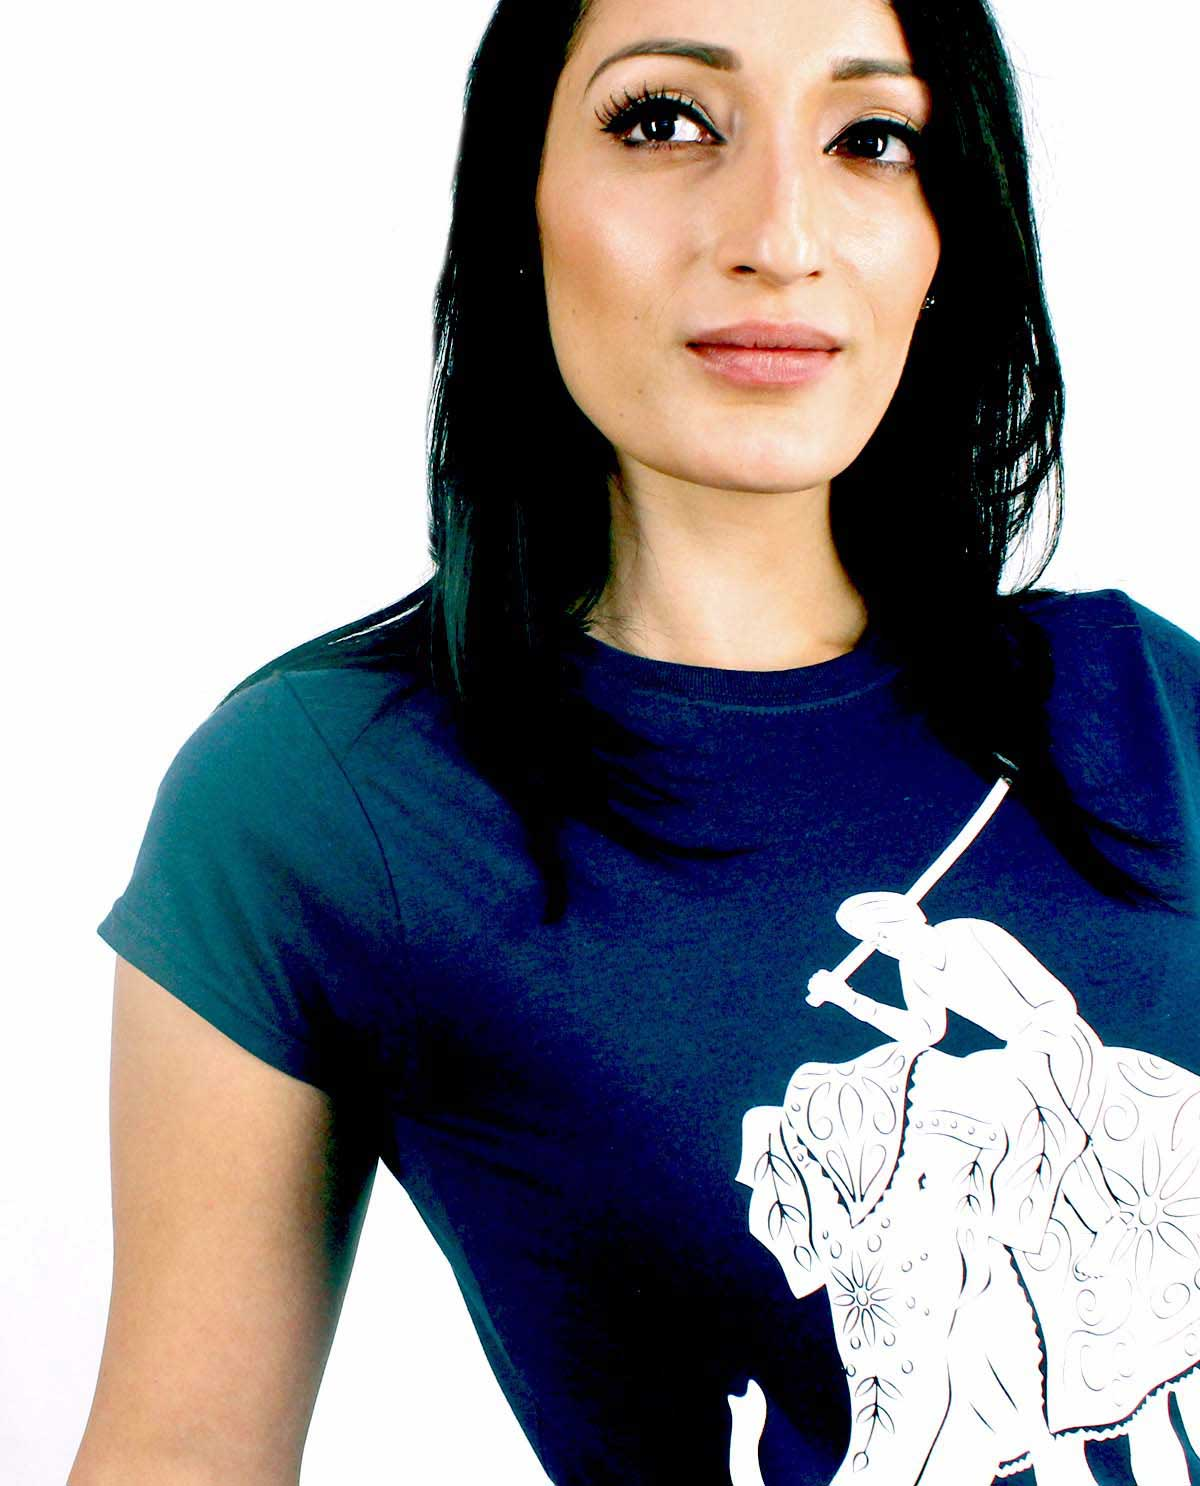 Elephanht Polo white silkscreened Graphic Design Tshirt printed on blue supersoft tshirt for women.